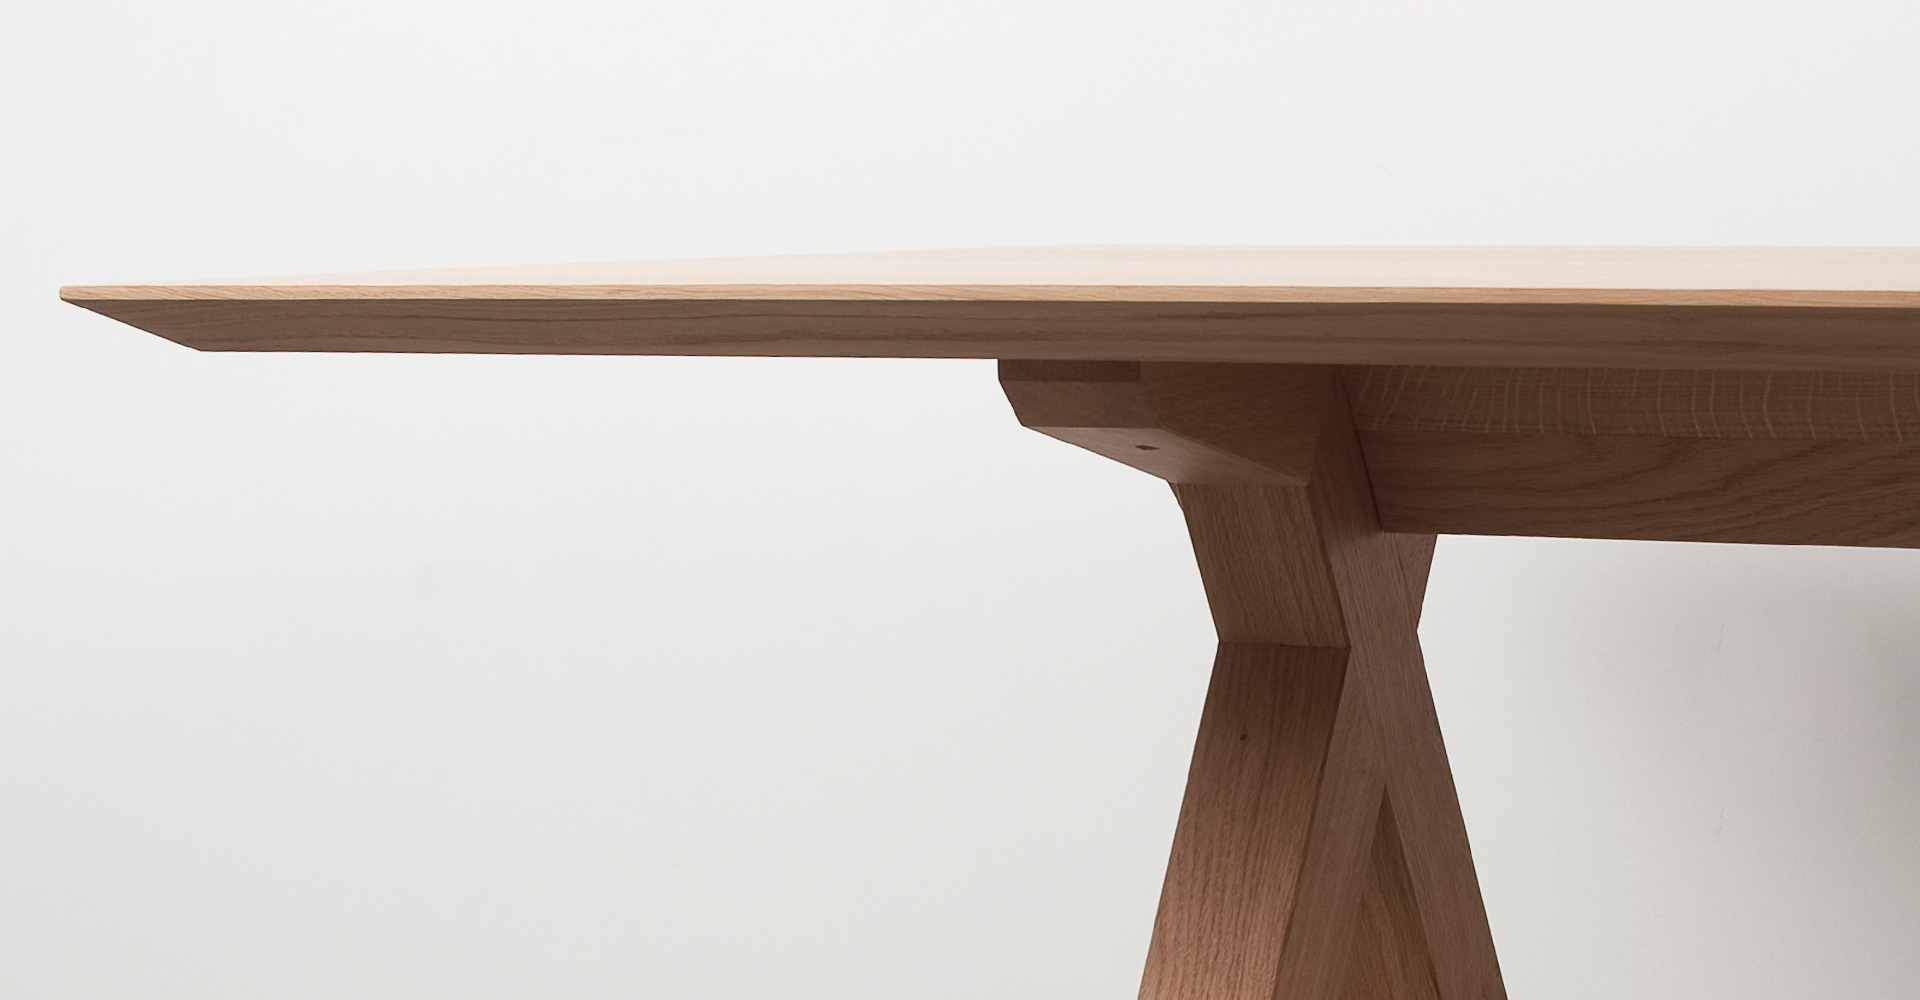 benoit-deneufbourg_crossing-table_00